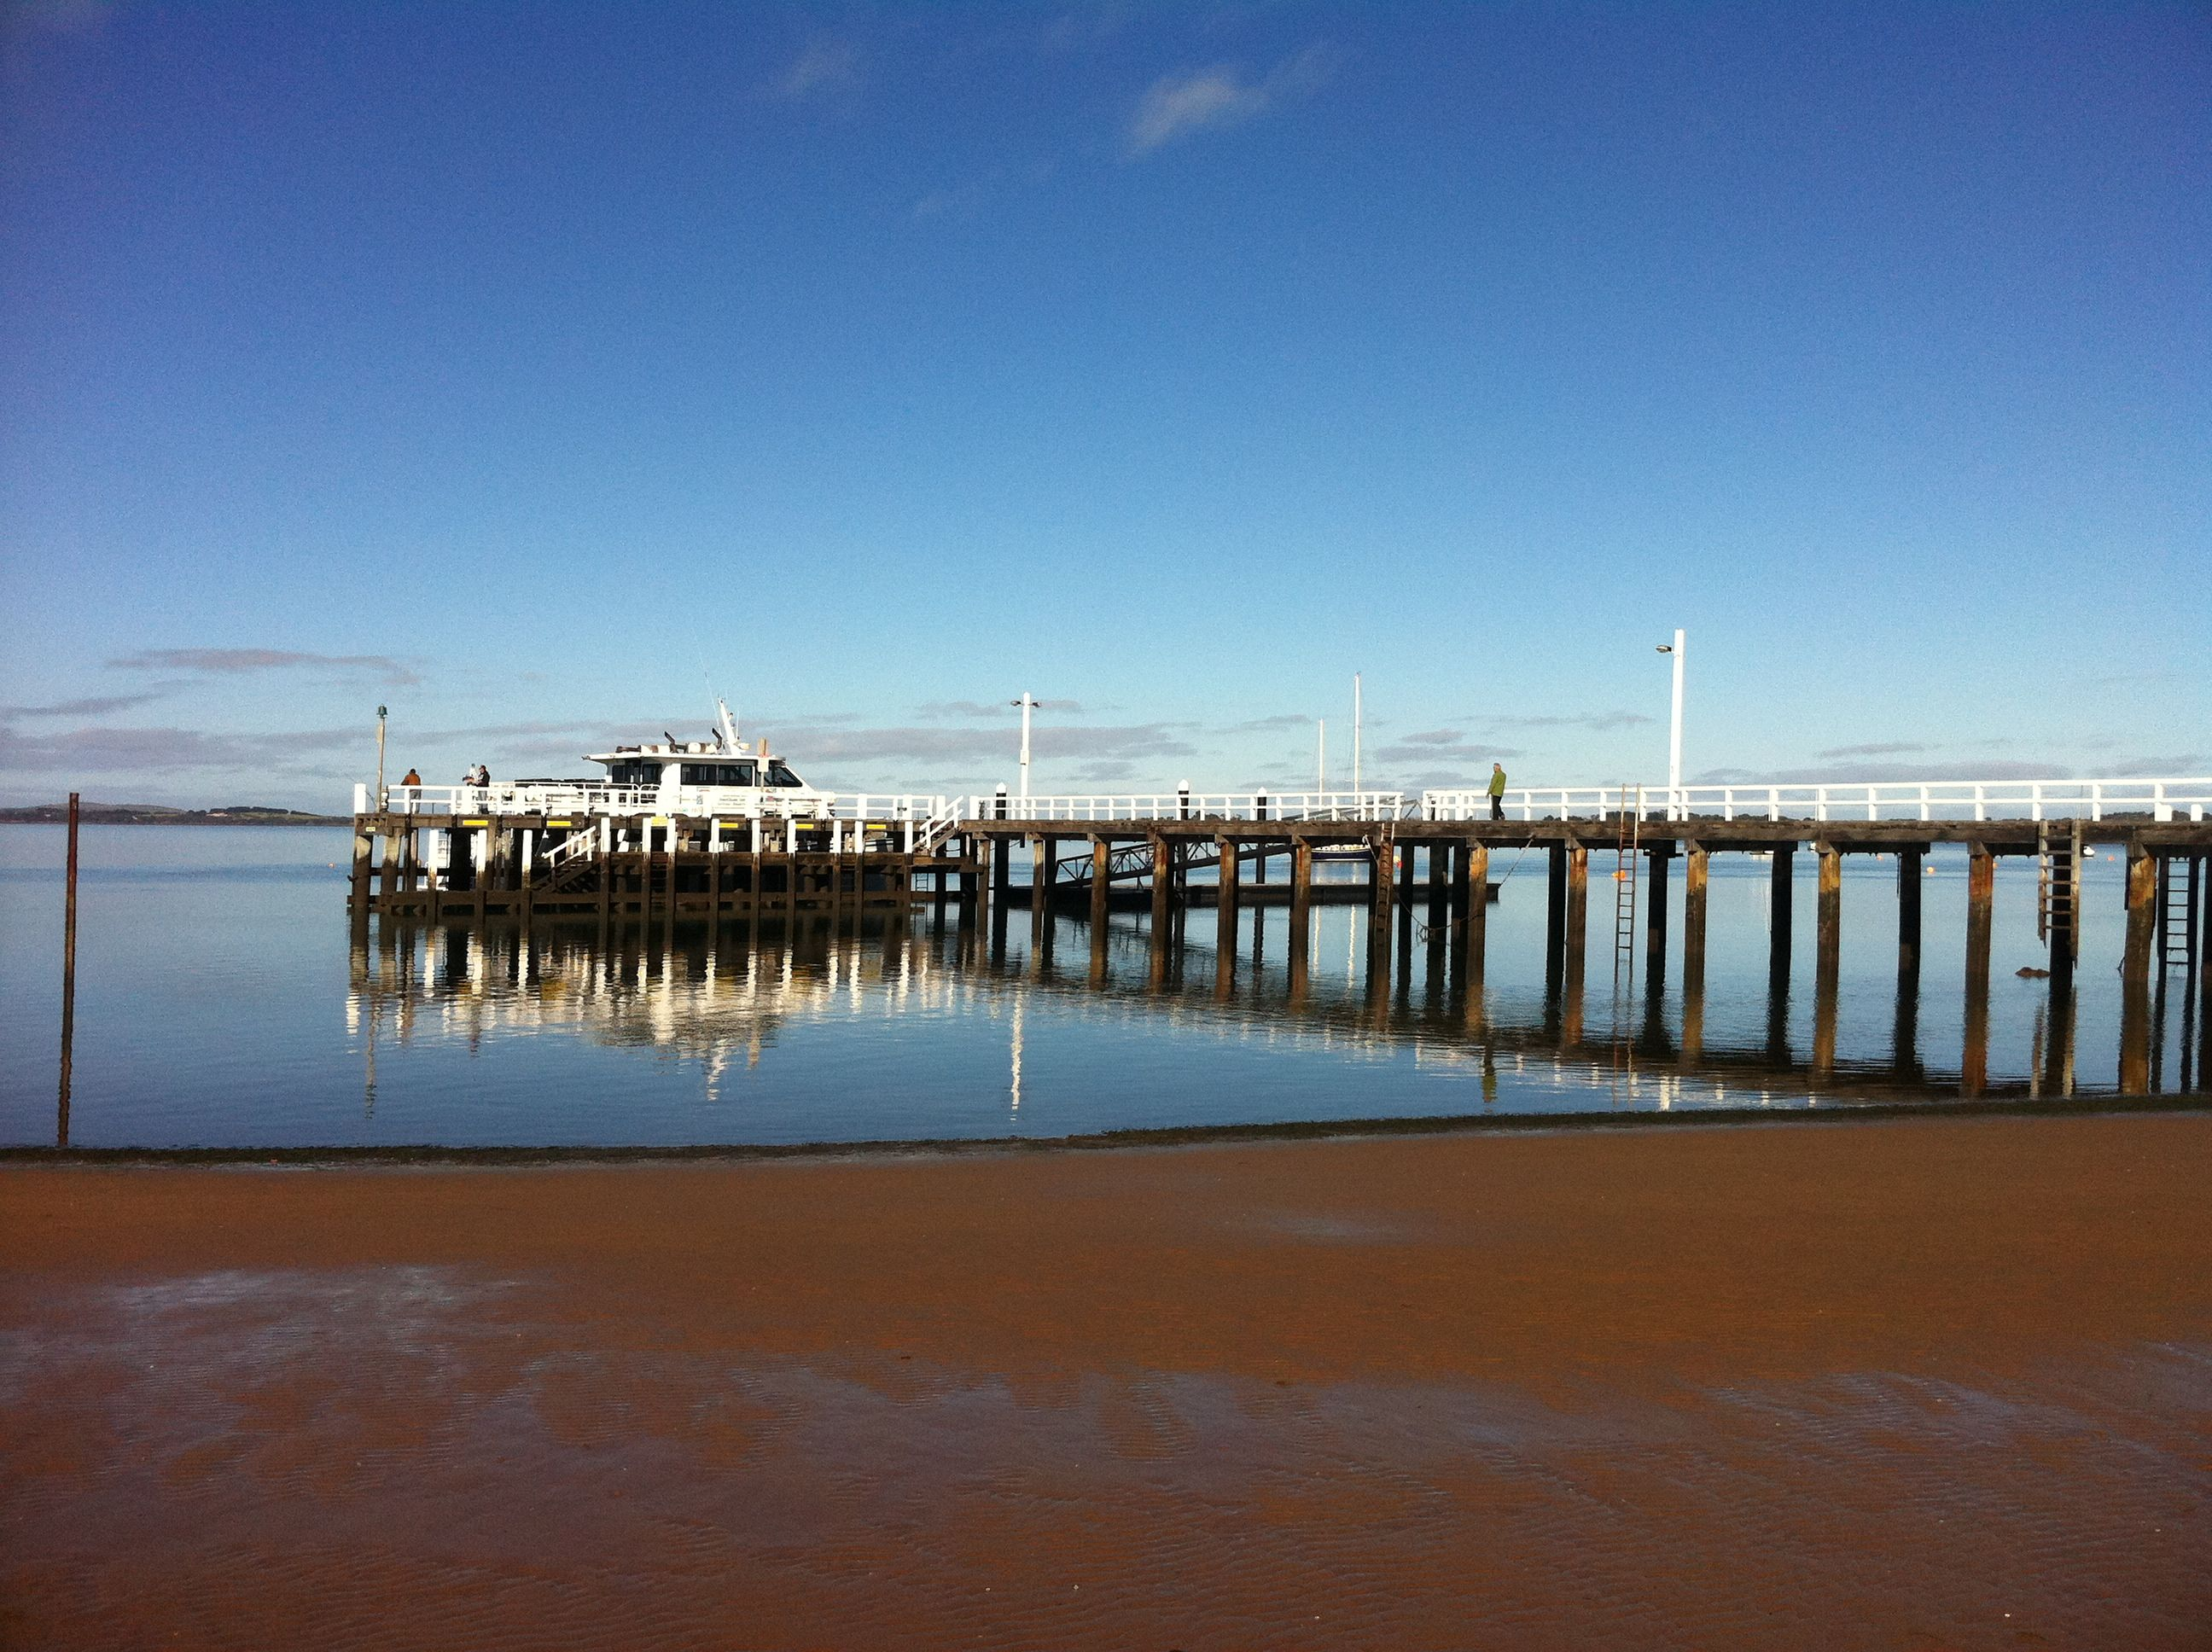 Rhyll pier, Philip Island is a great place for photos